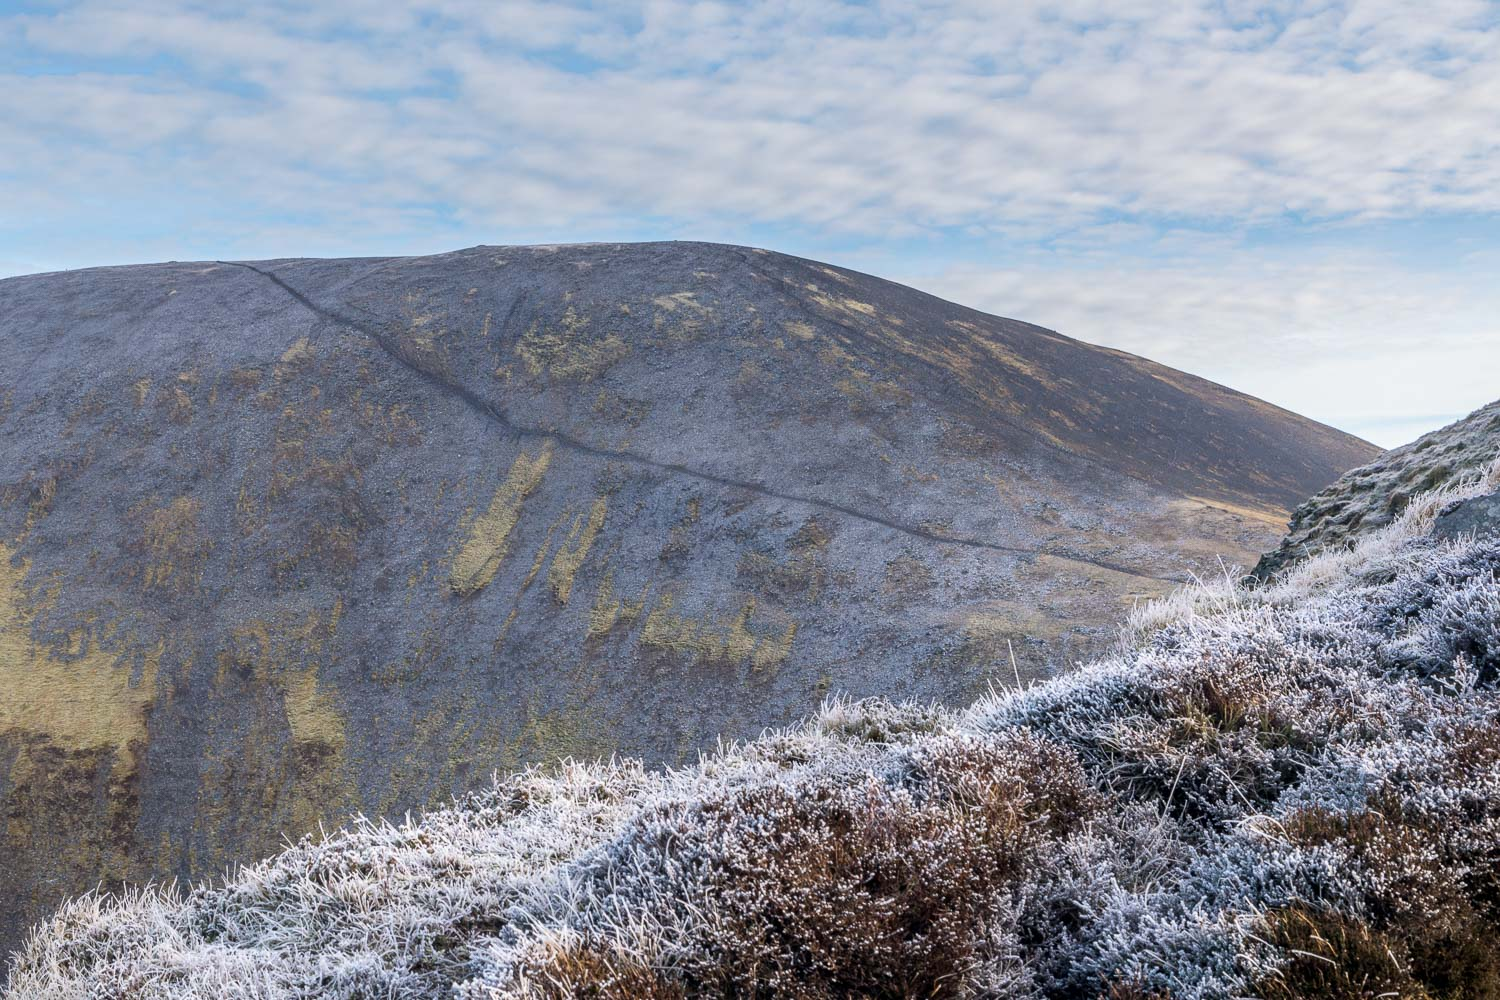 The path from Carl Side to Skiddaw